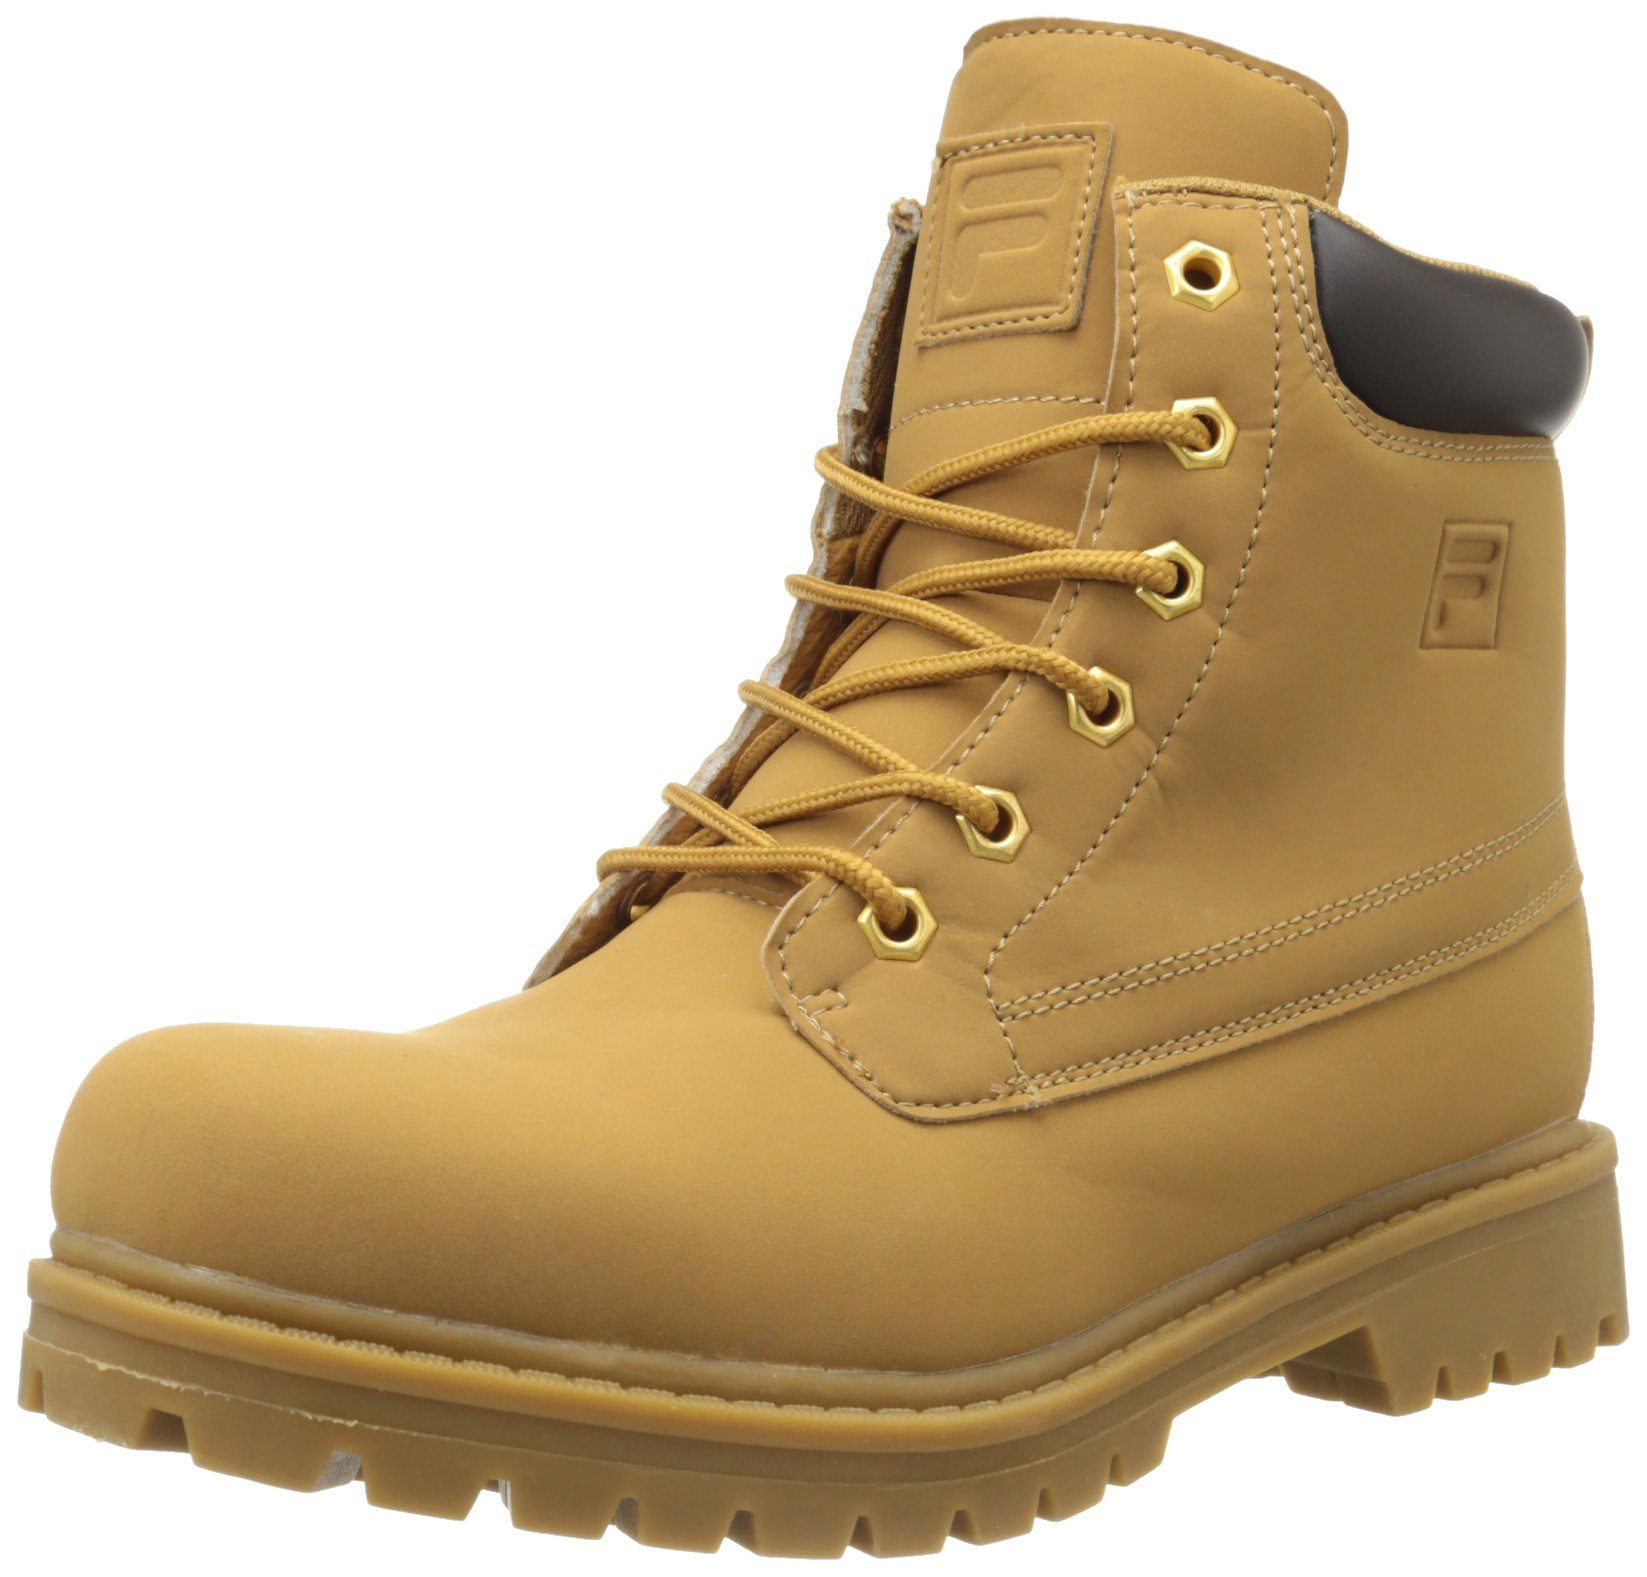 Fila 1SH40063-206 : Men's Edgewater 12 Hiking Boot Wheat/Gum (12 D(M) US)